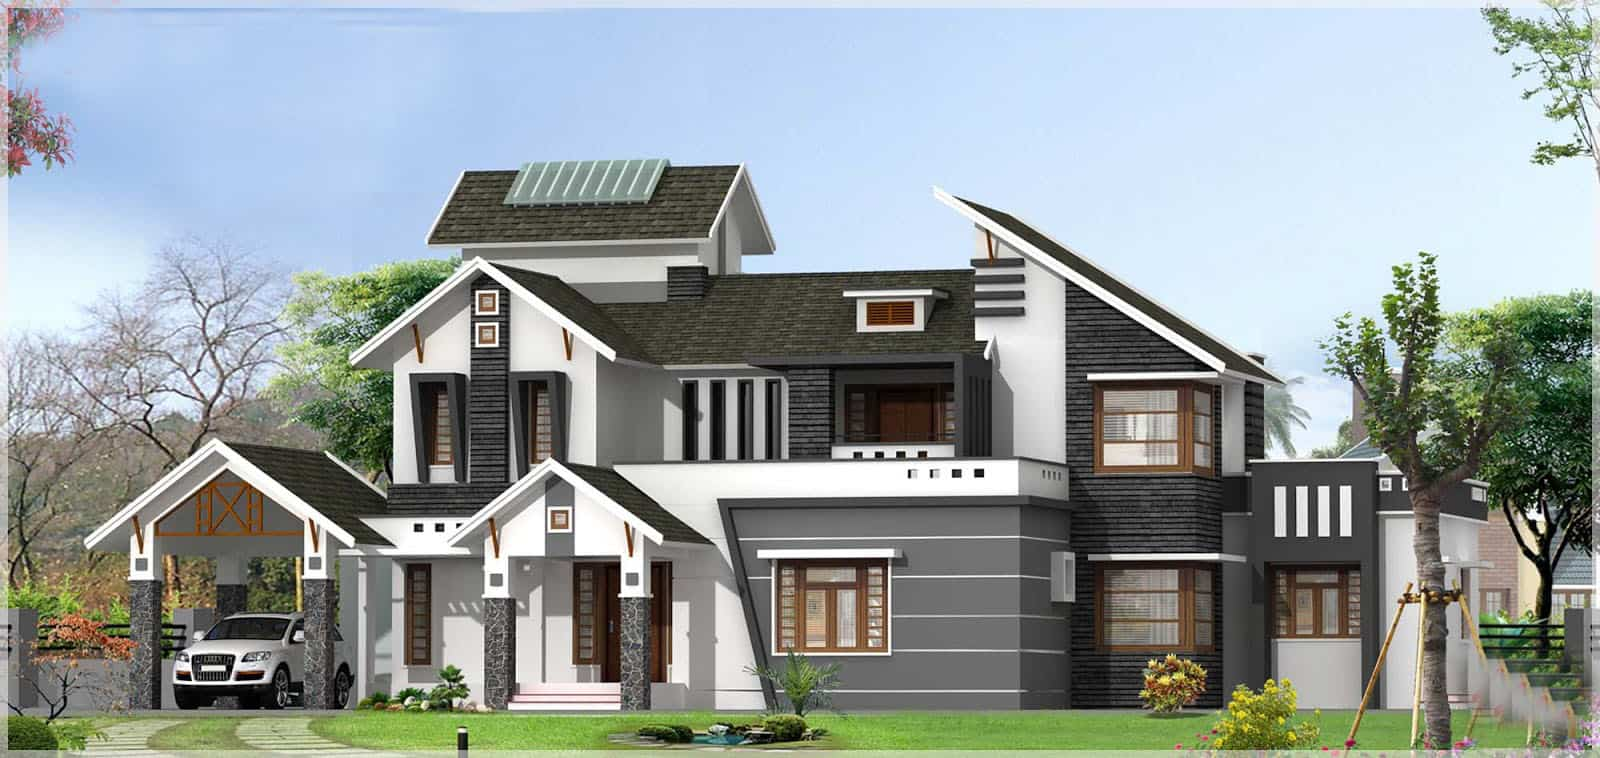 Sloping roof kerala house design at 3136 with pergolas Home design